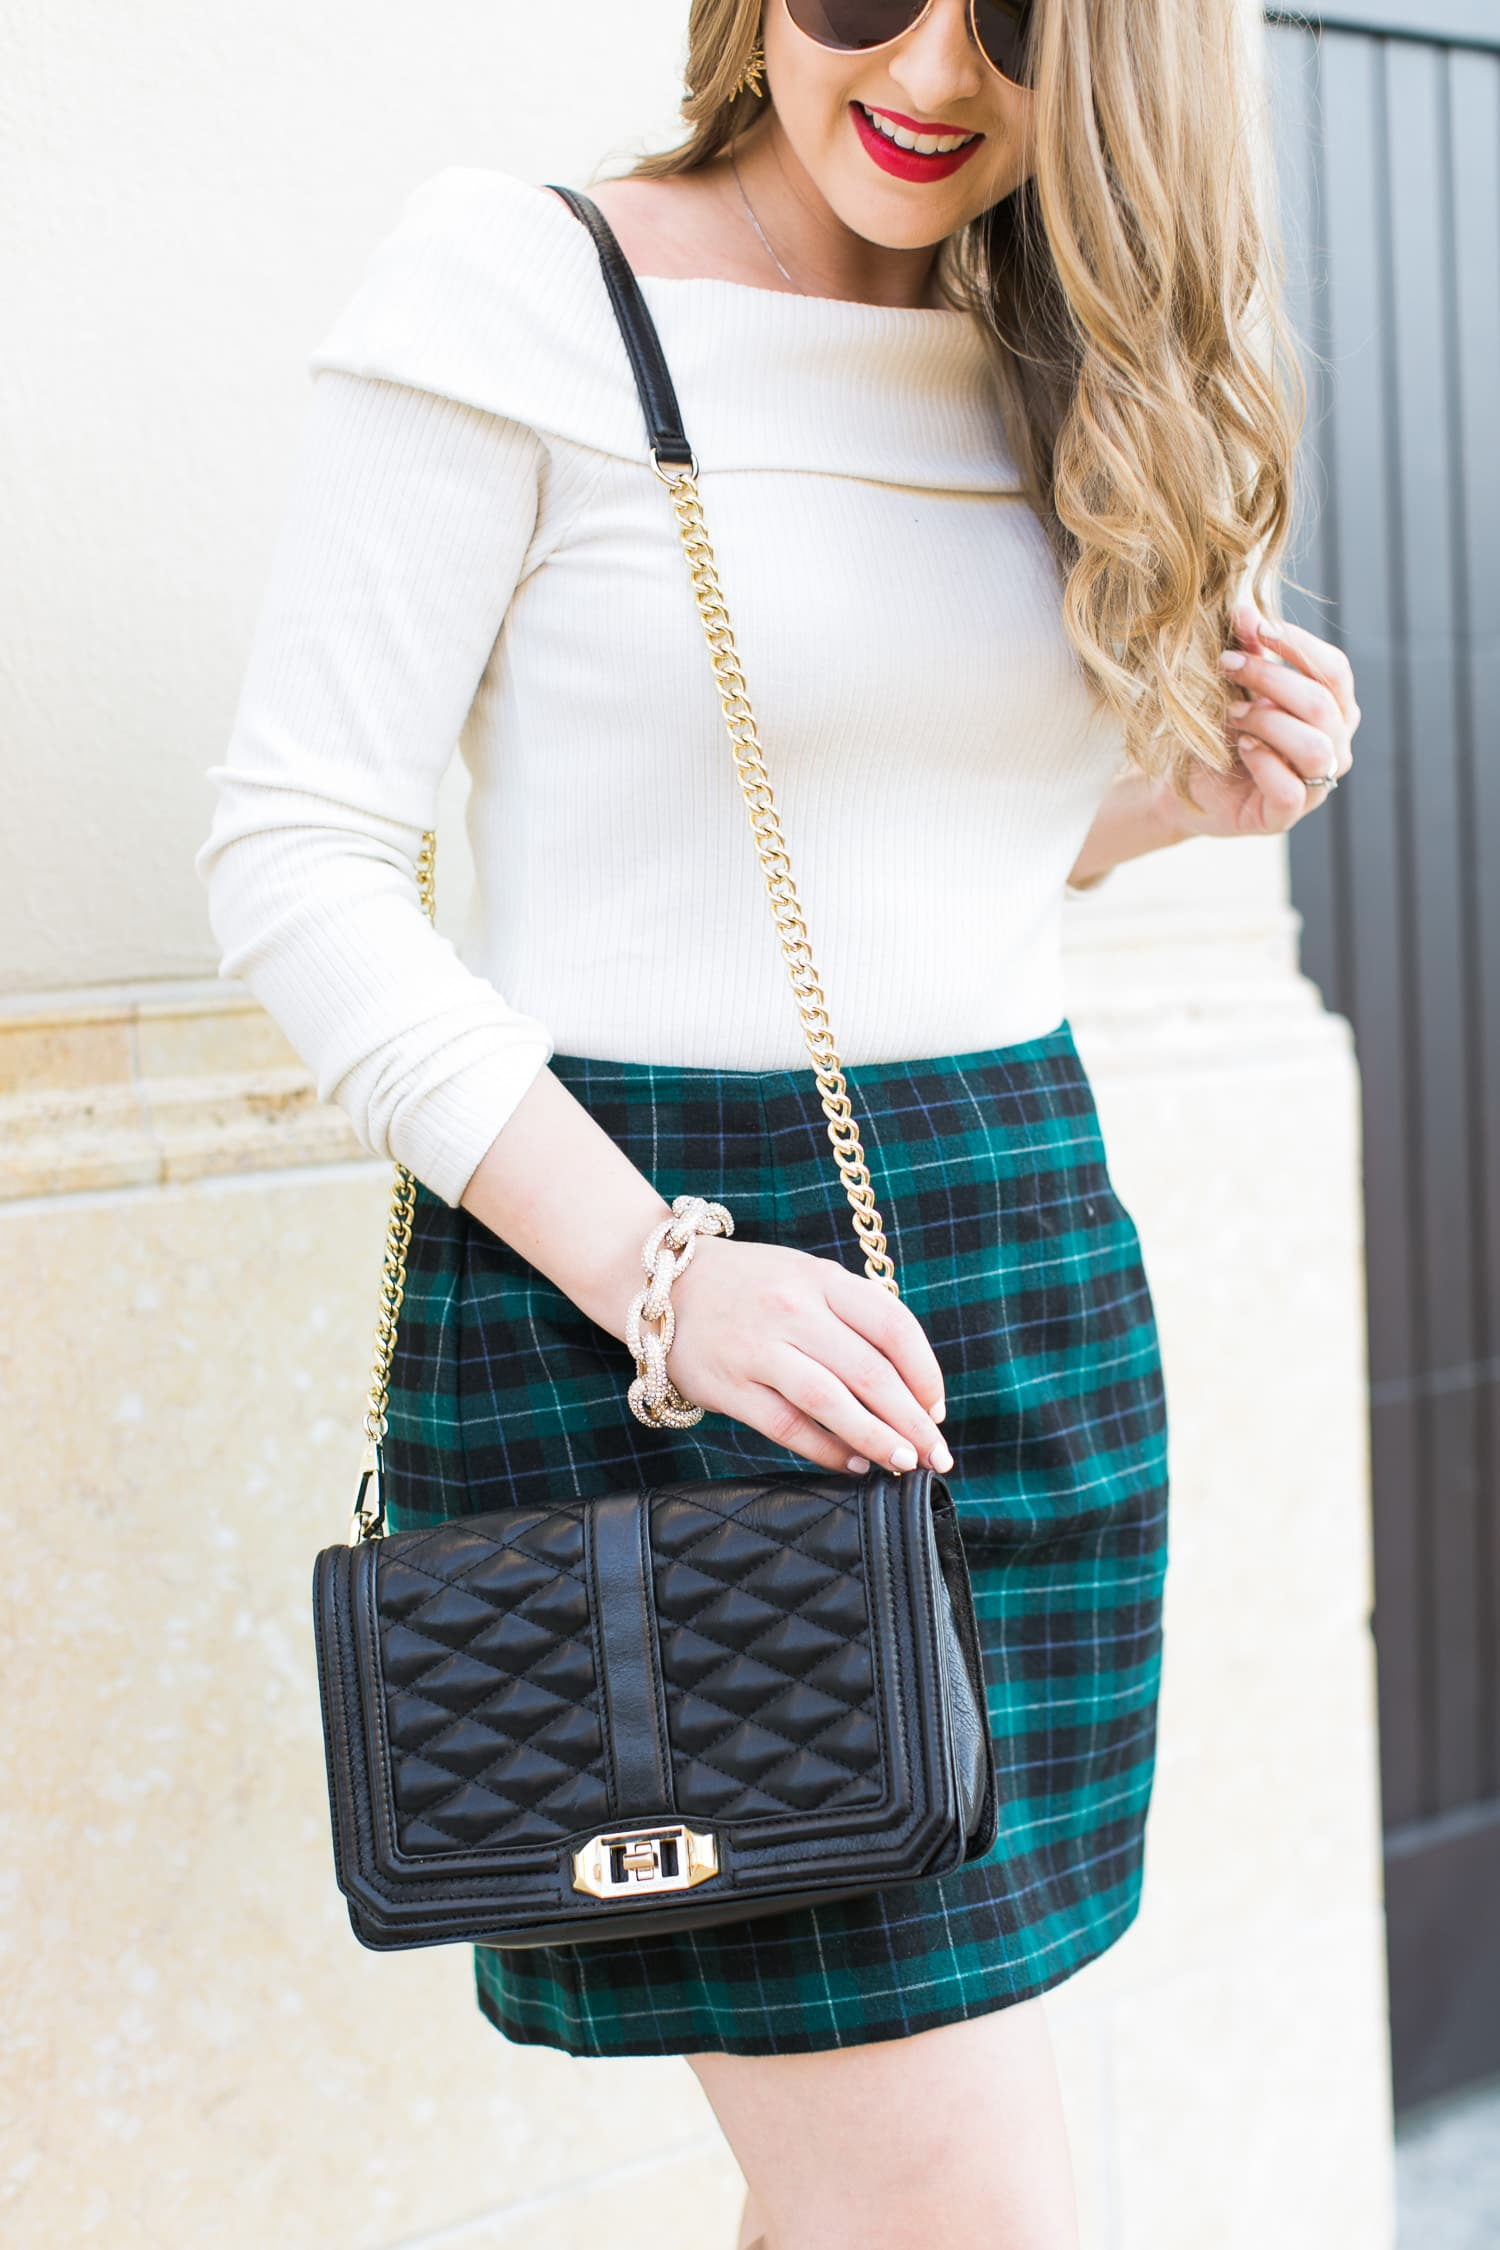 holiday-party-outfit-idea-off-shoulder-sweater-plaid-skirt-red-lips-pave-link-bracelet-rebecca-minkoff-purse-015